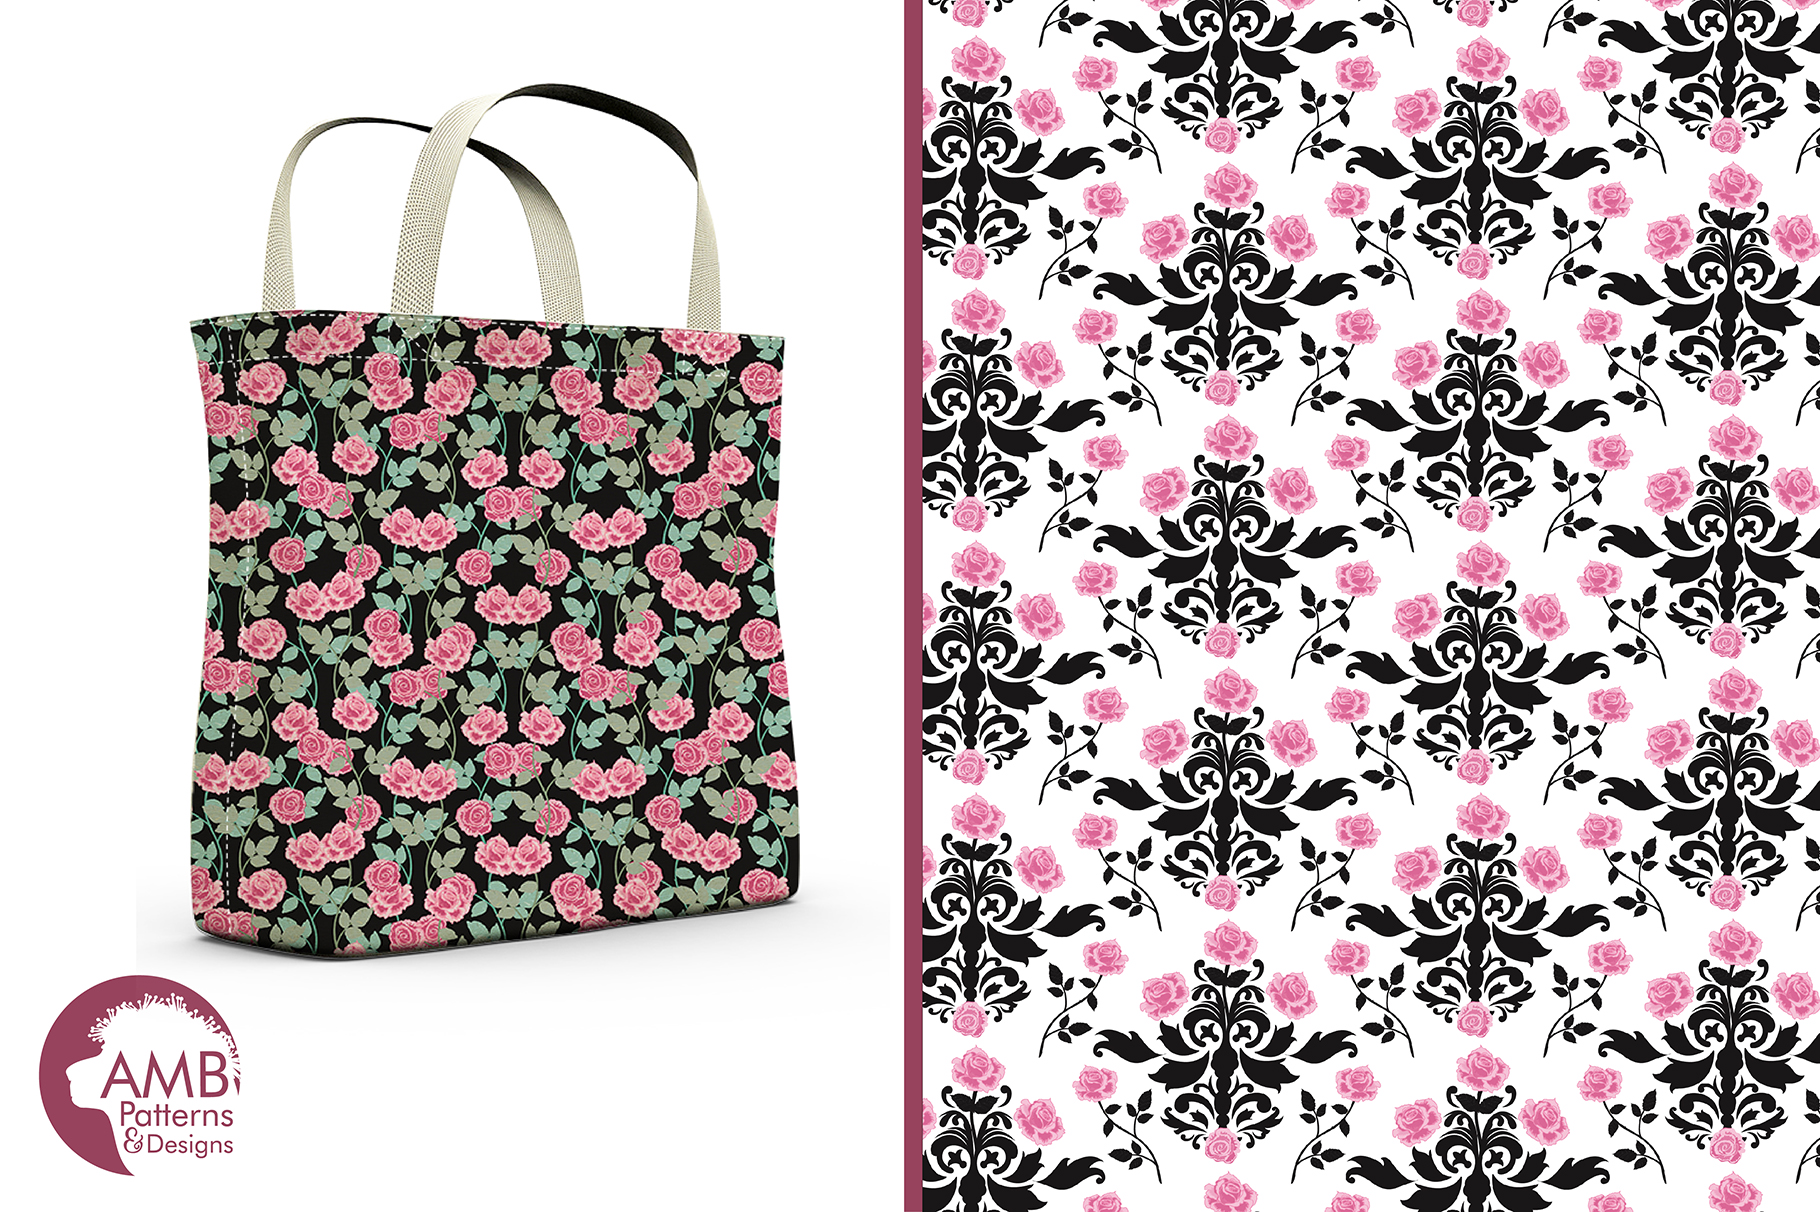 Shabby Pink Spade Patterns Pink Floral Papers Amb 1421